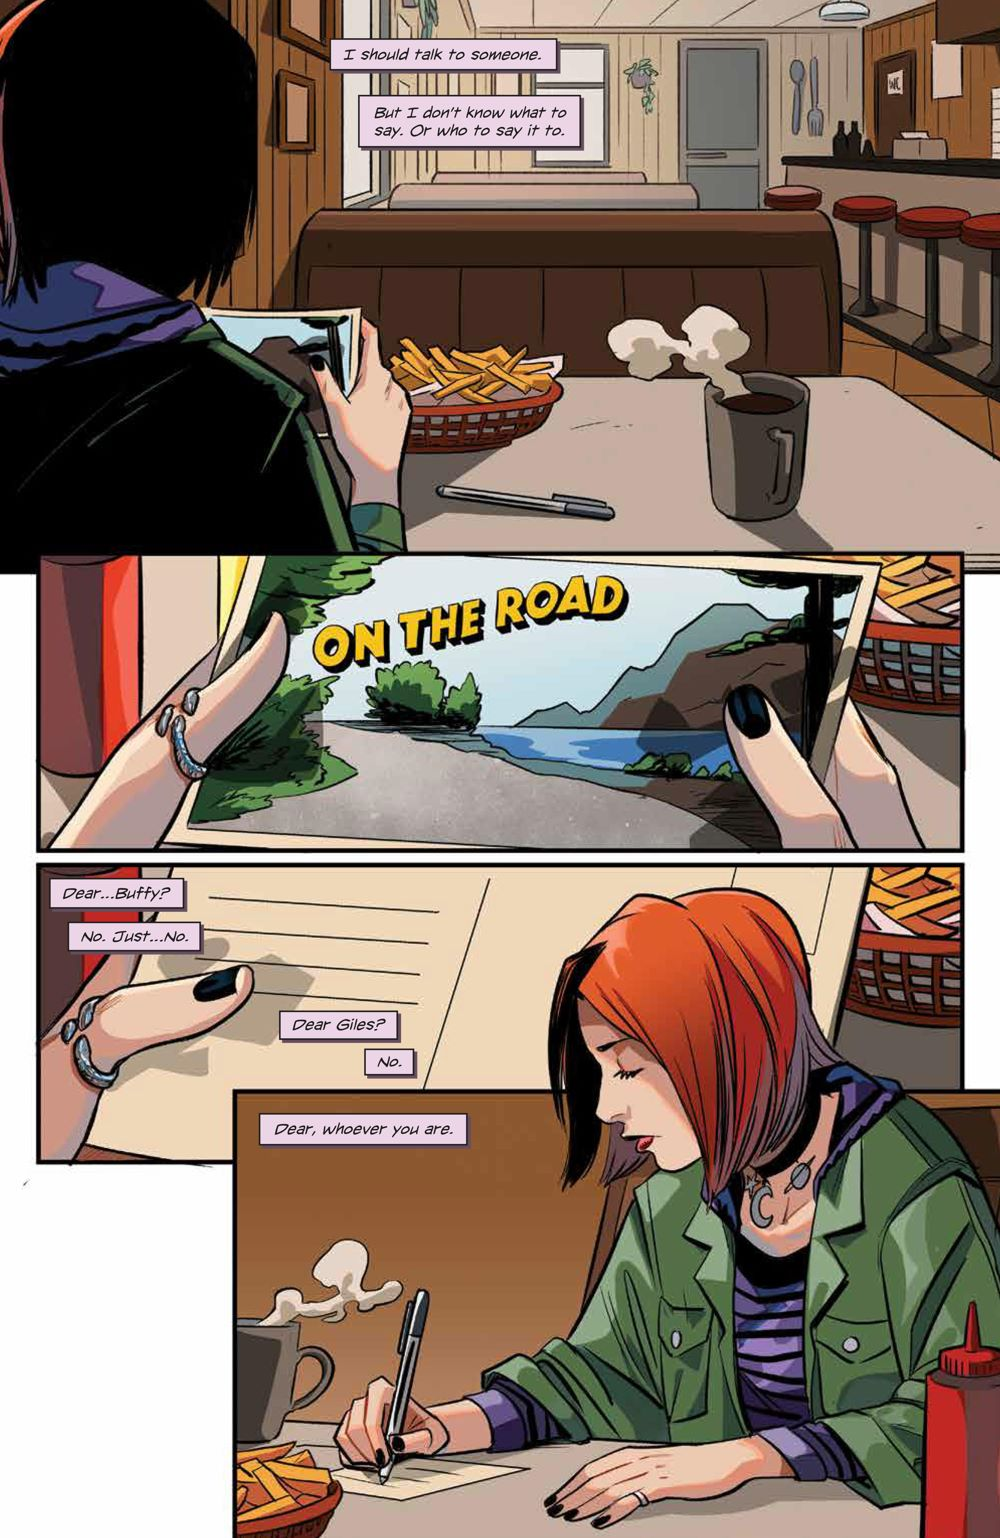 Buffy_Willow_SC_PRESS_9 ComicList Previews: BUFFY THE VAMPIRE SLAYER WILLOW TP